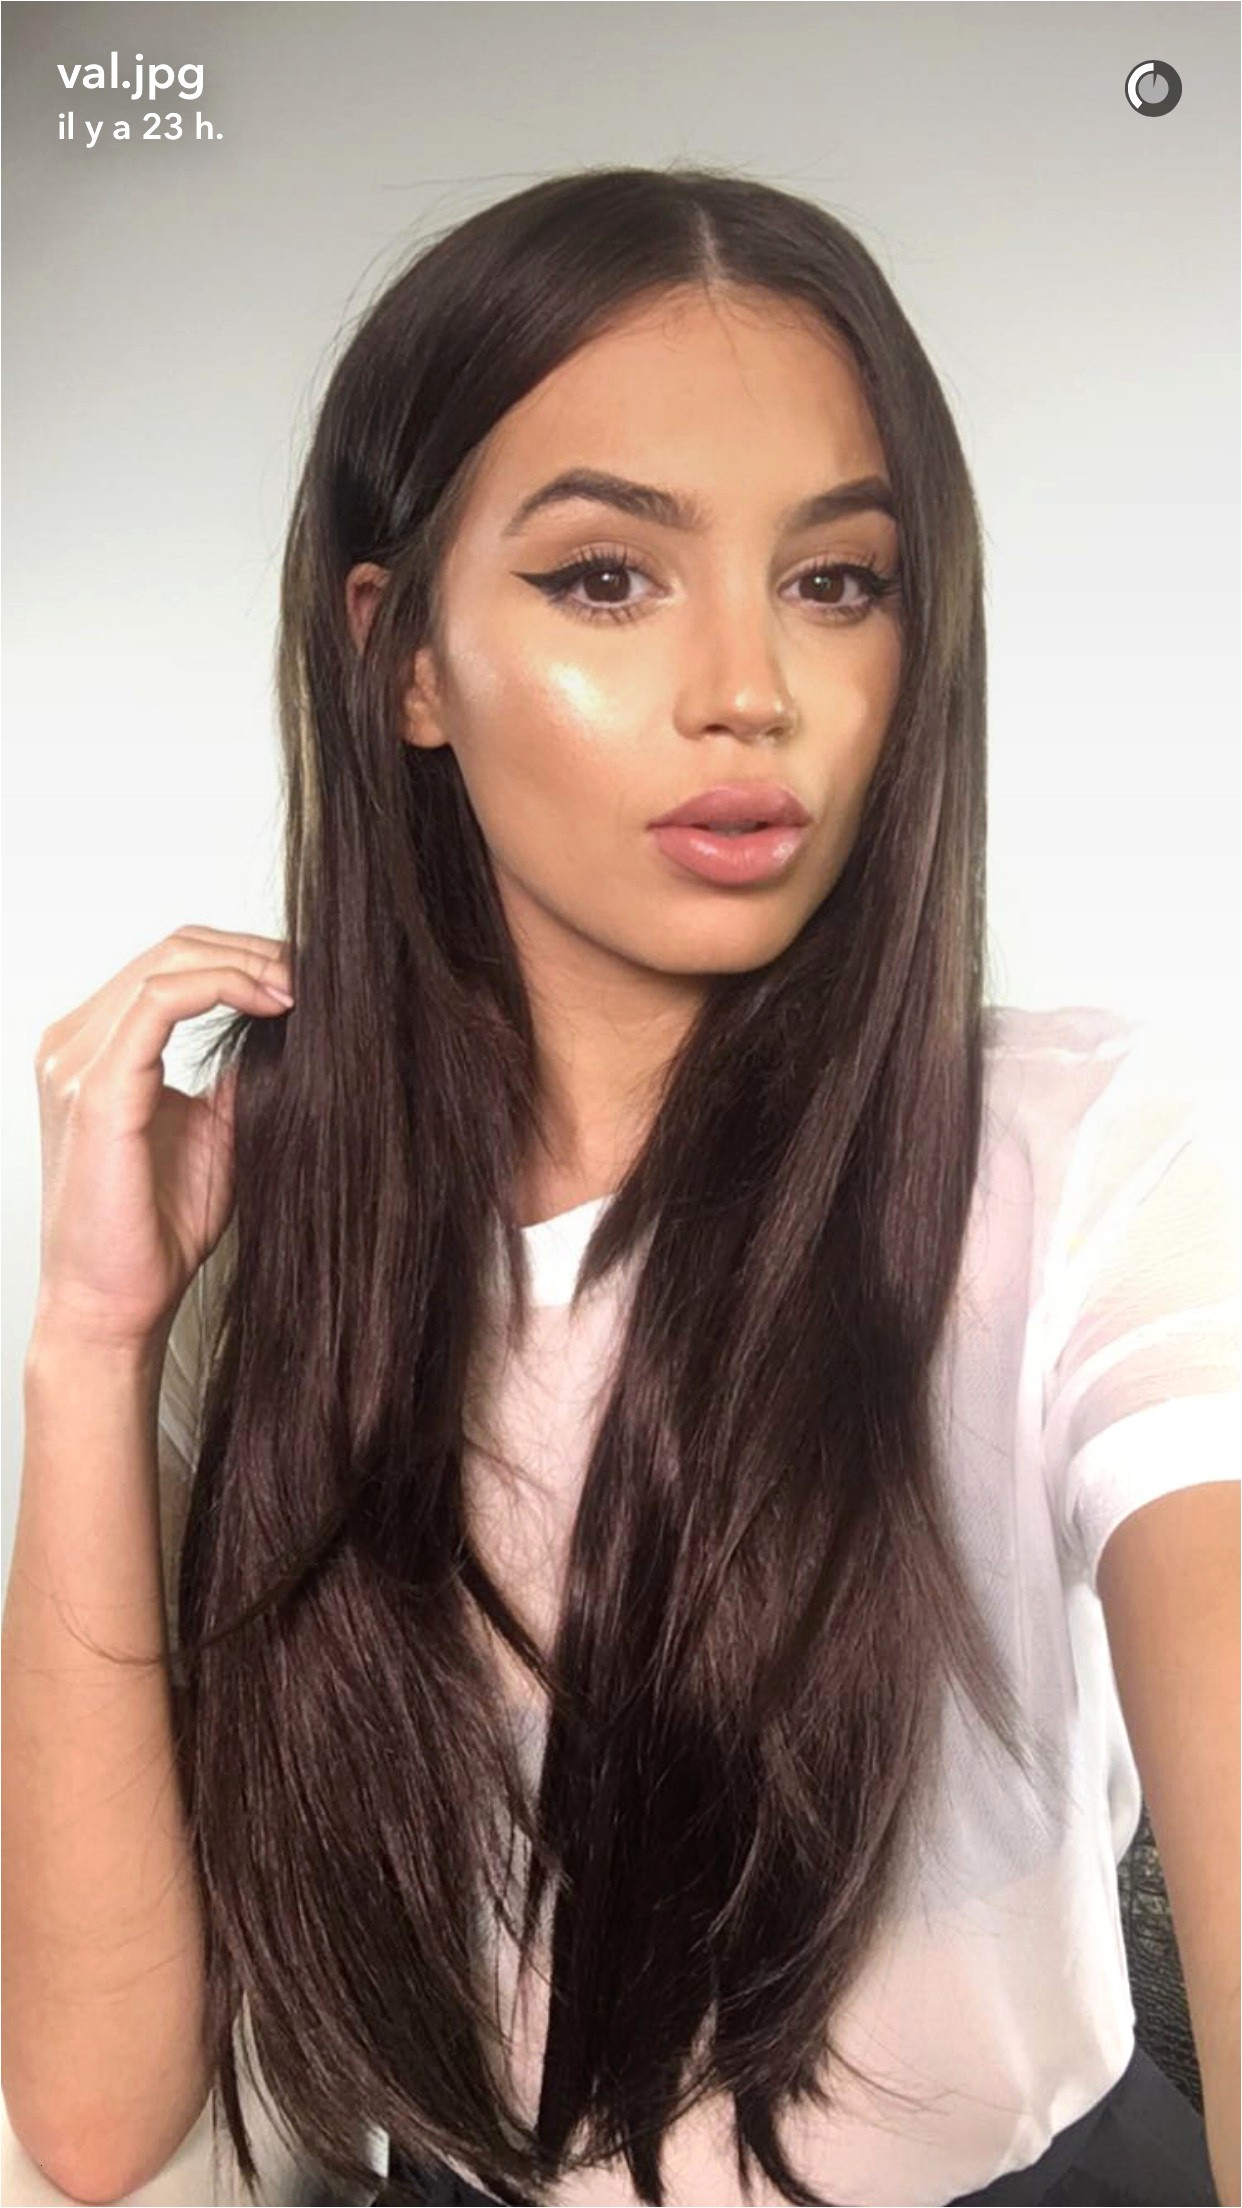 Fashion Hairstyle for Girl Updo Braid Hairstyles Black Hair Unique Hairstyles and Cuts Elegant